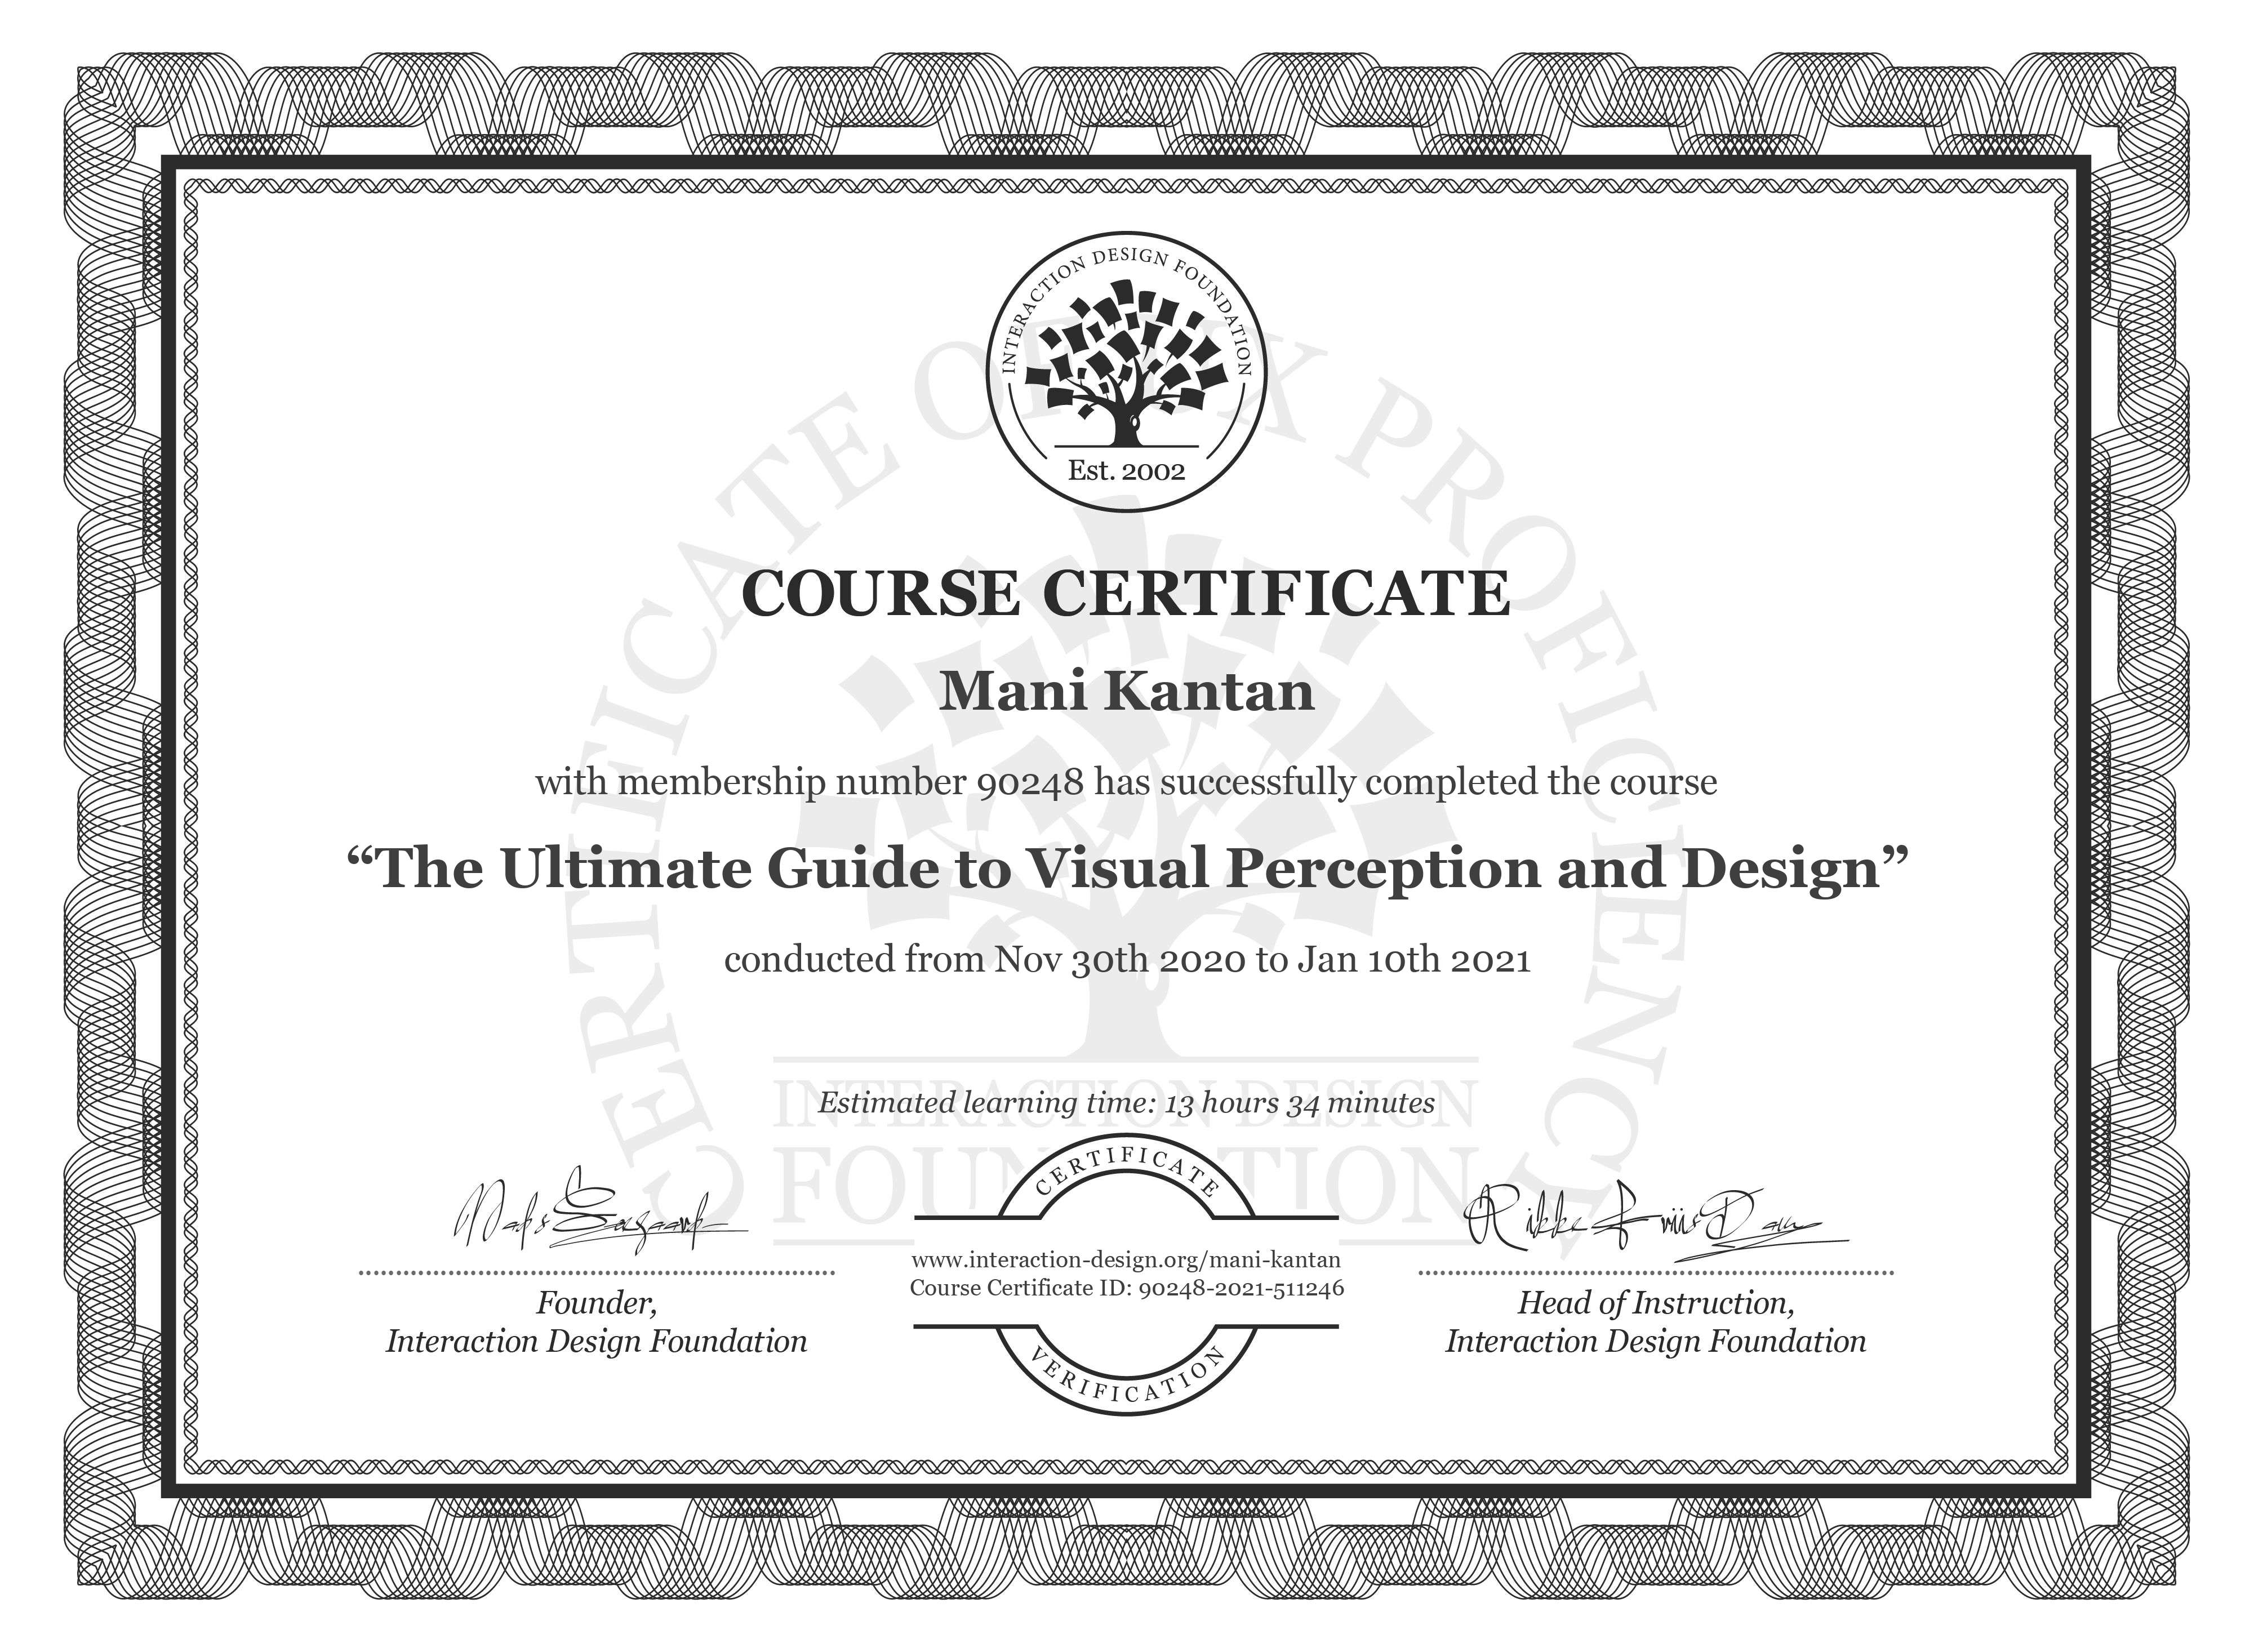 Mani Kantan's Course Certificate: The Ultimate Guide to Visual Perception and Design